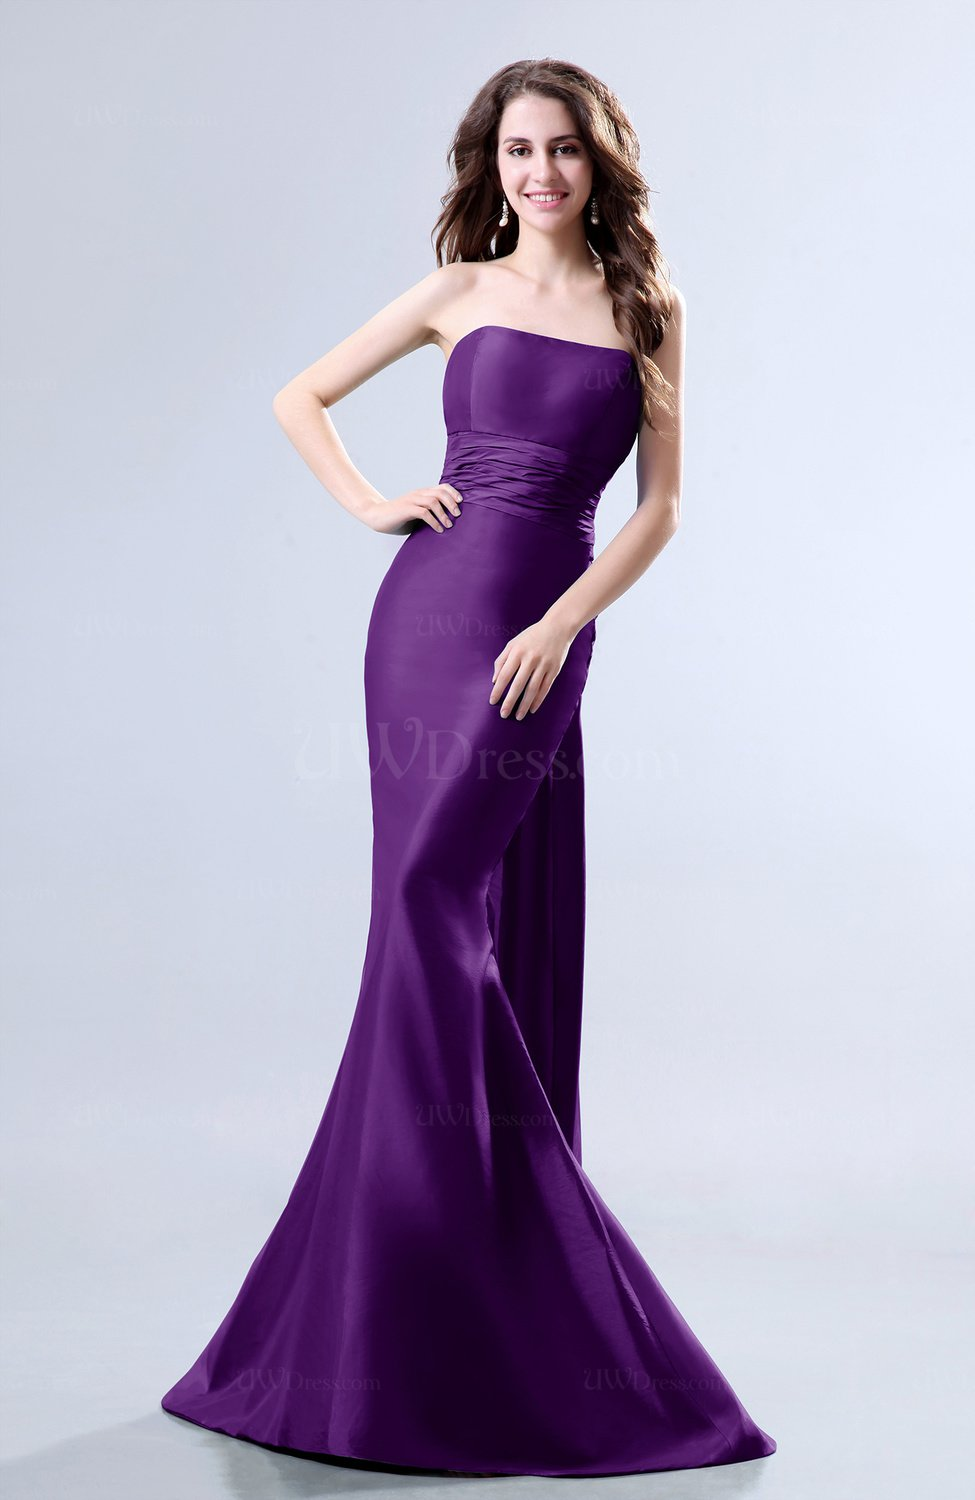 Dark Purple Elegant Mermaid Sleeveless Backless Court Train Evening Dresses